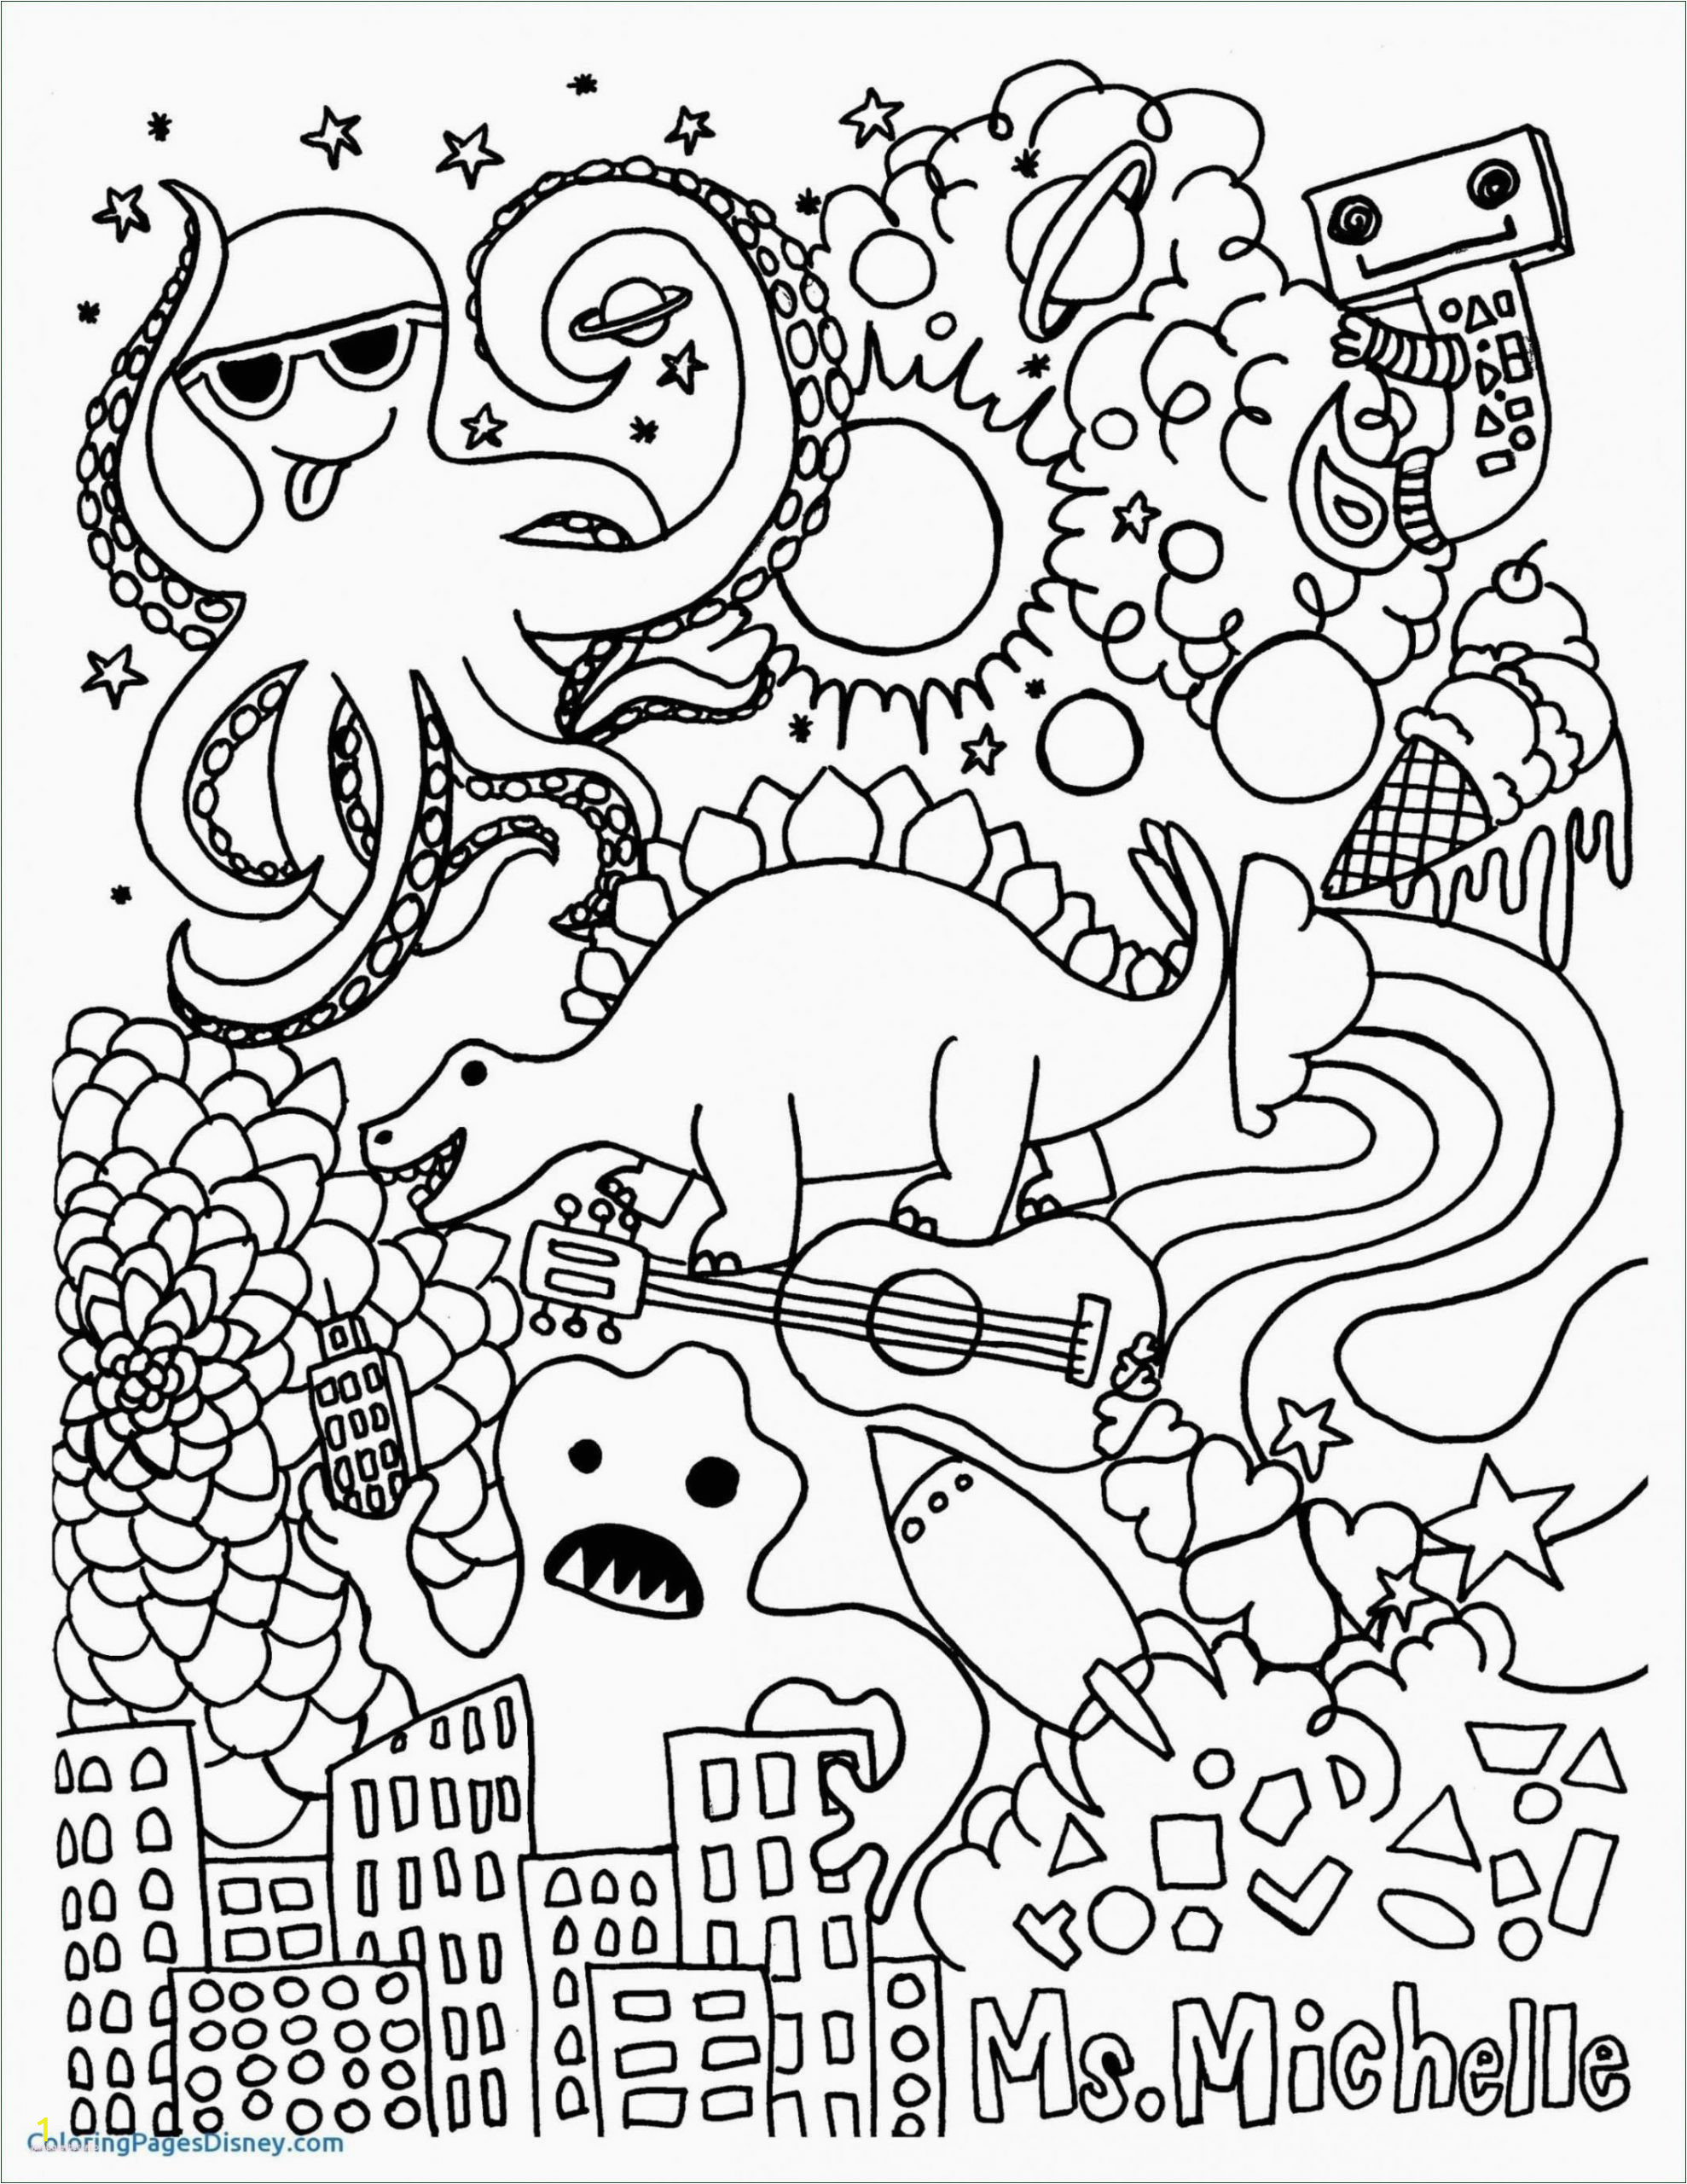 free fairy coloring pages new free printable disney coloring pages for adults latestarticles of free fairy coloring pages